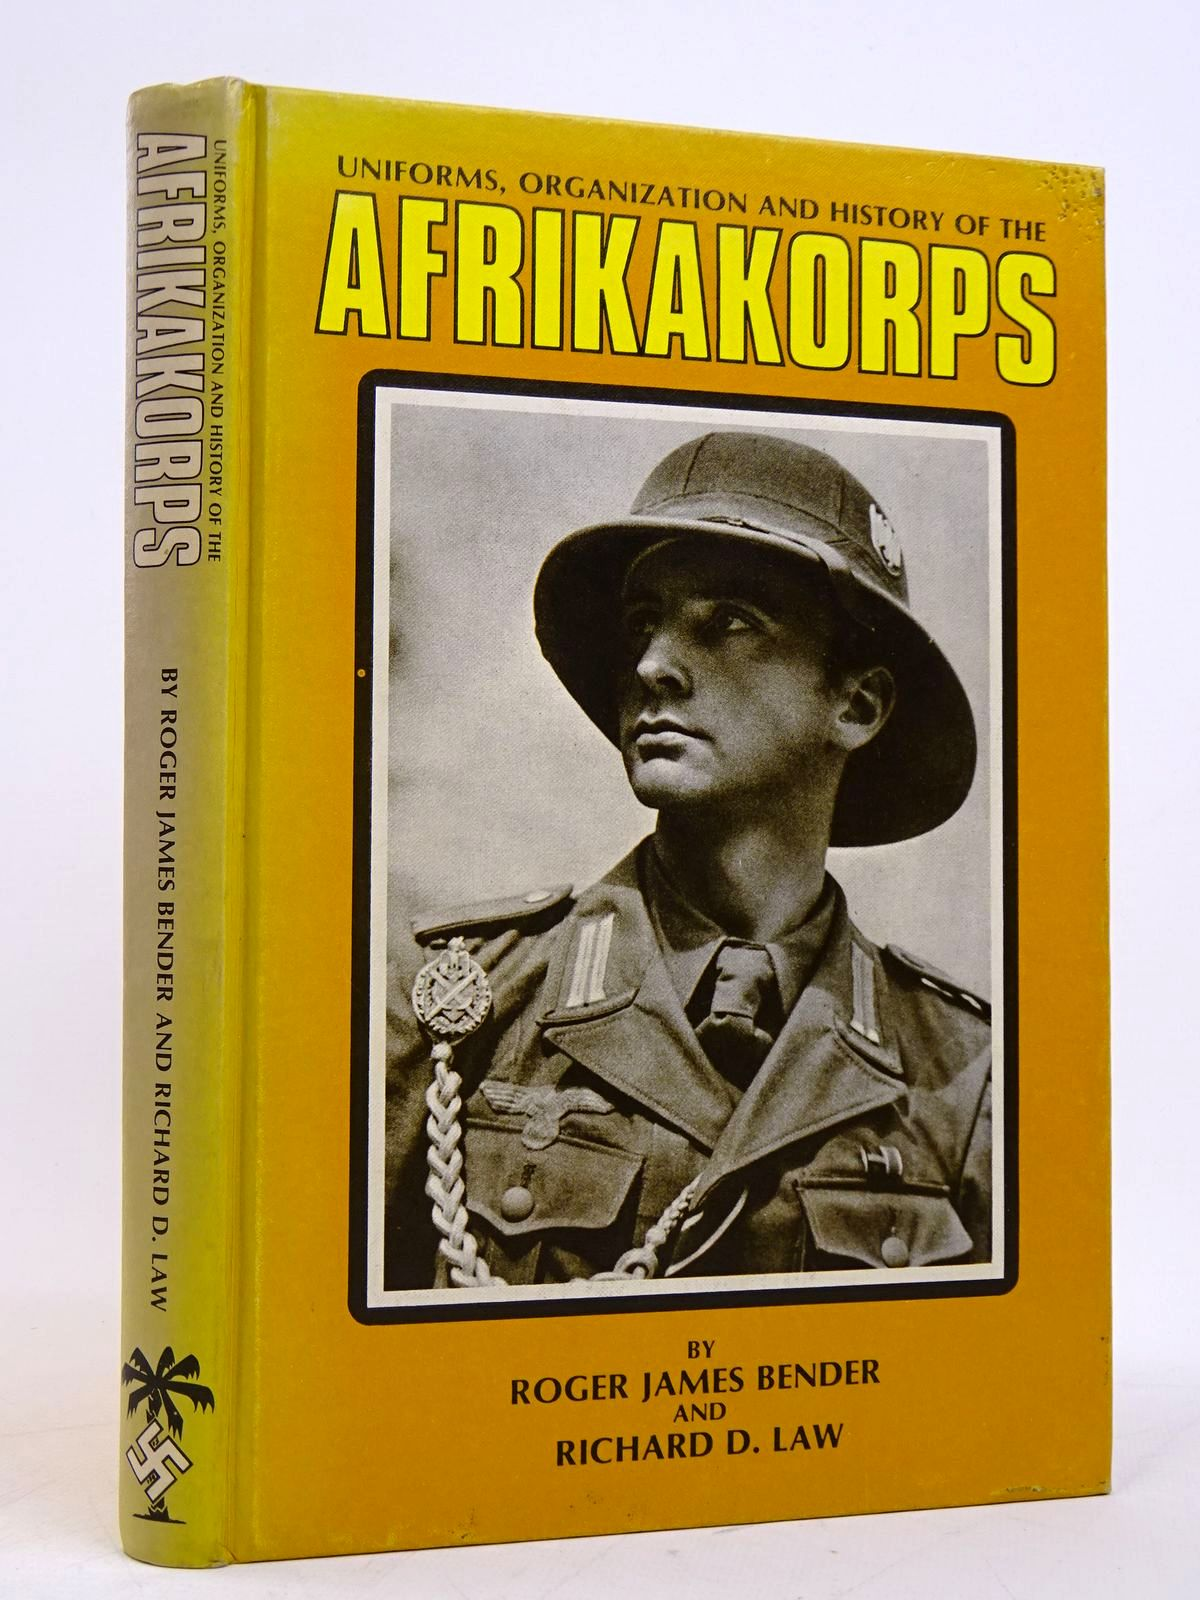 Photo of UNIFORMS, ORGANIZATION AND HISTORY OF THE AFRIKAKORPS written by Bender, Roger James<br />Law, Richard D. published by R. James Bender (STOCK CODE: 1817896)  for sale by Stella & Rose's Books